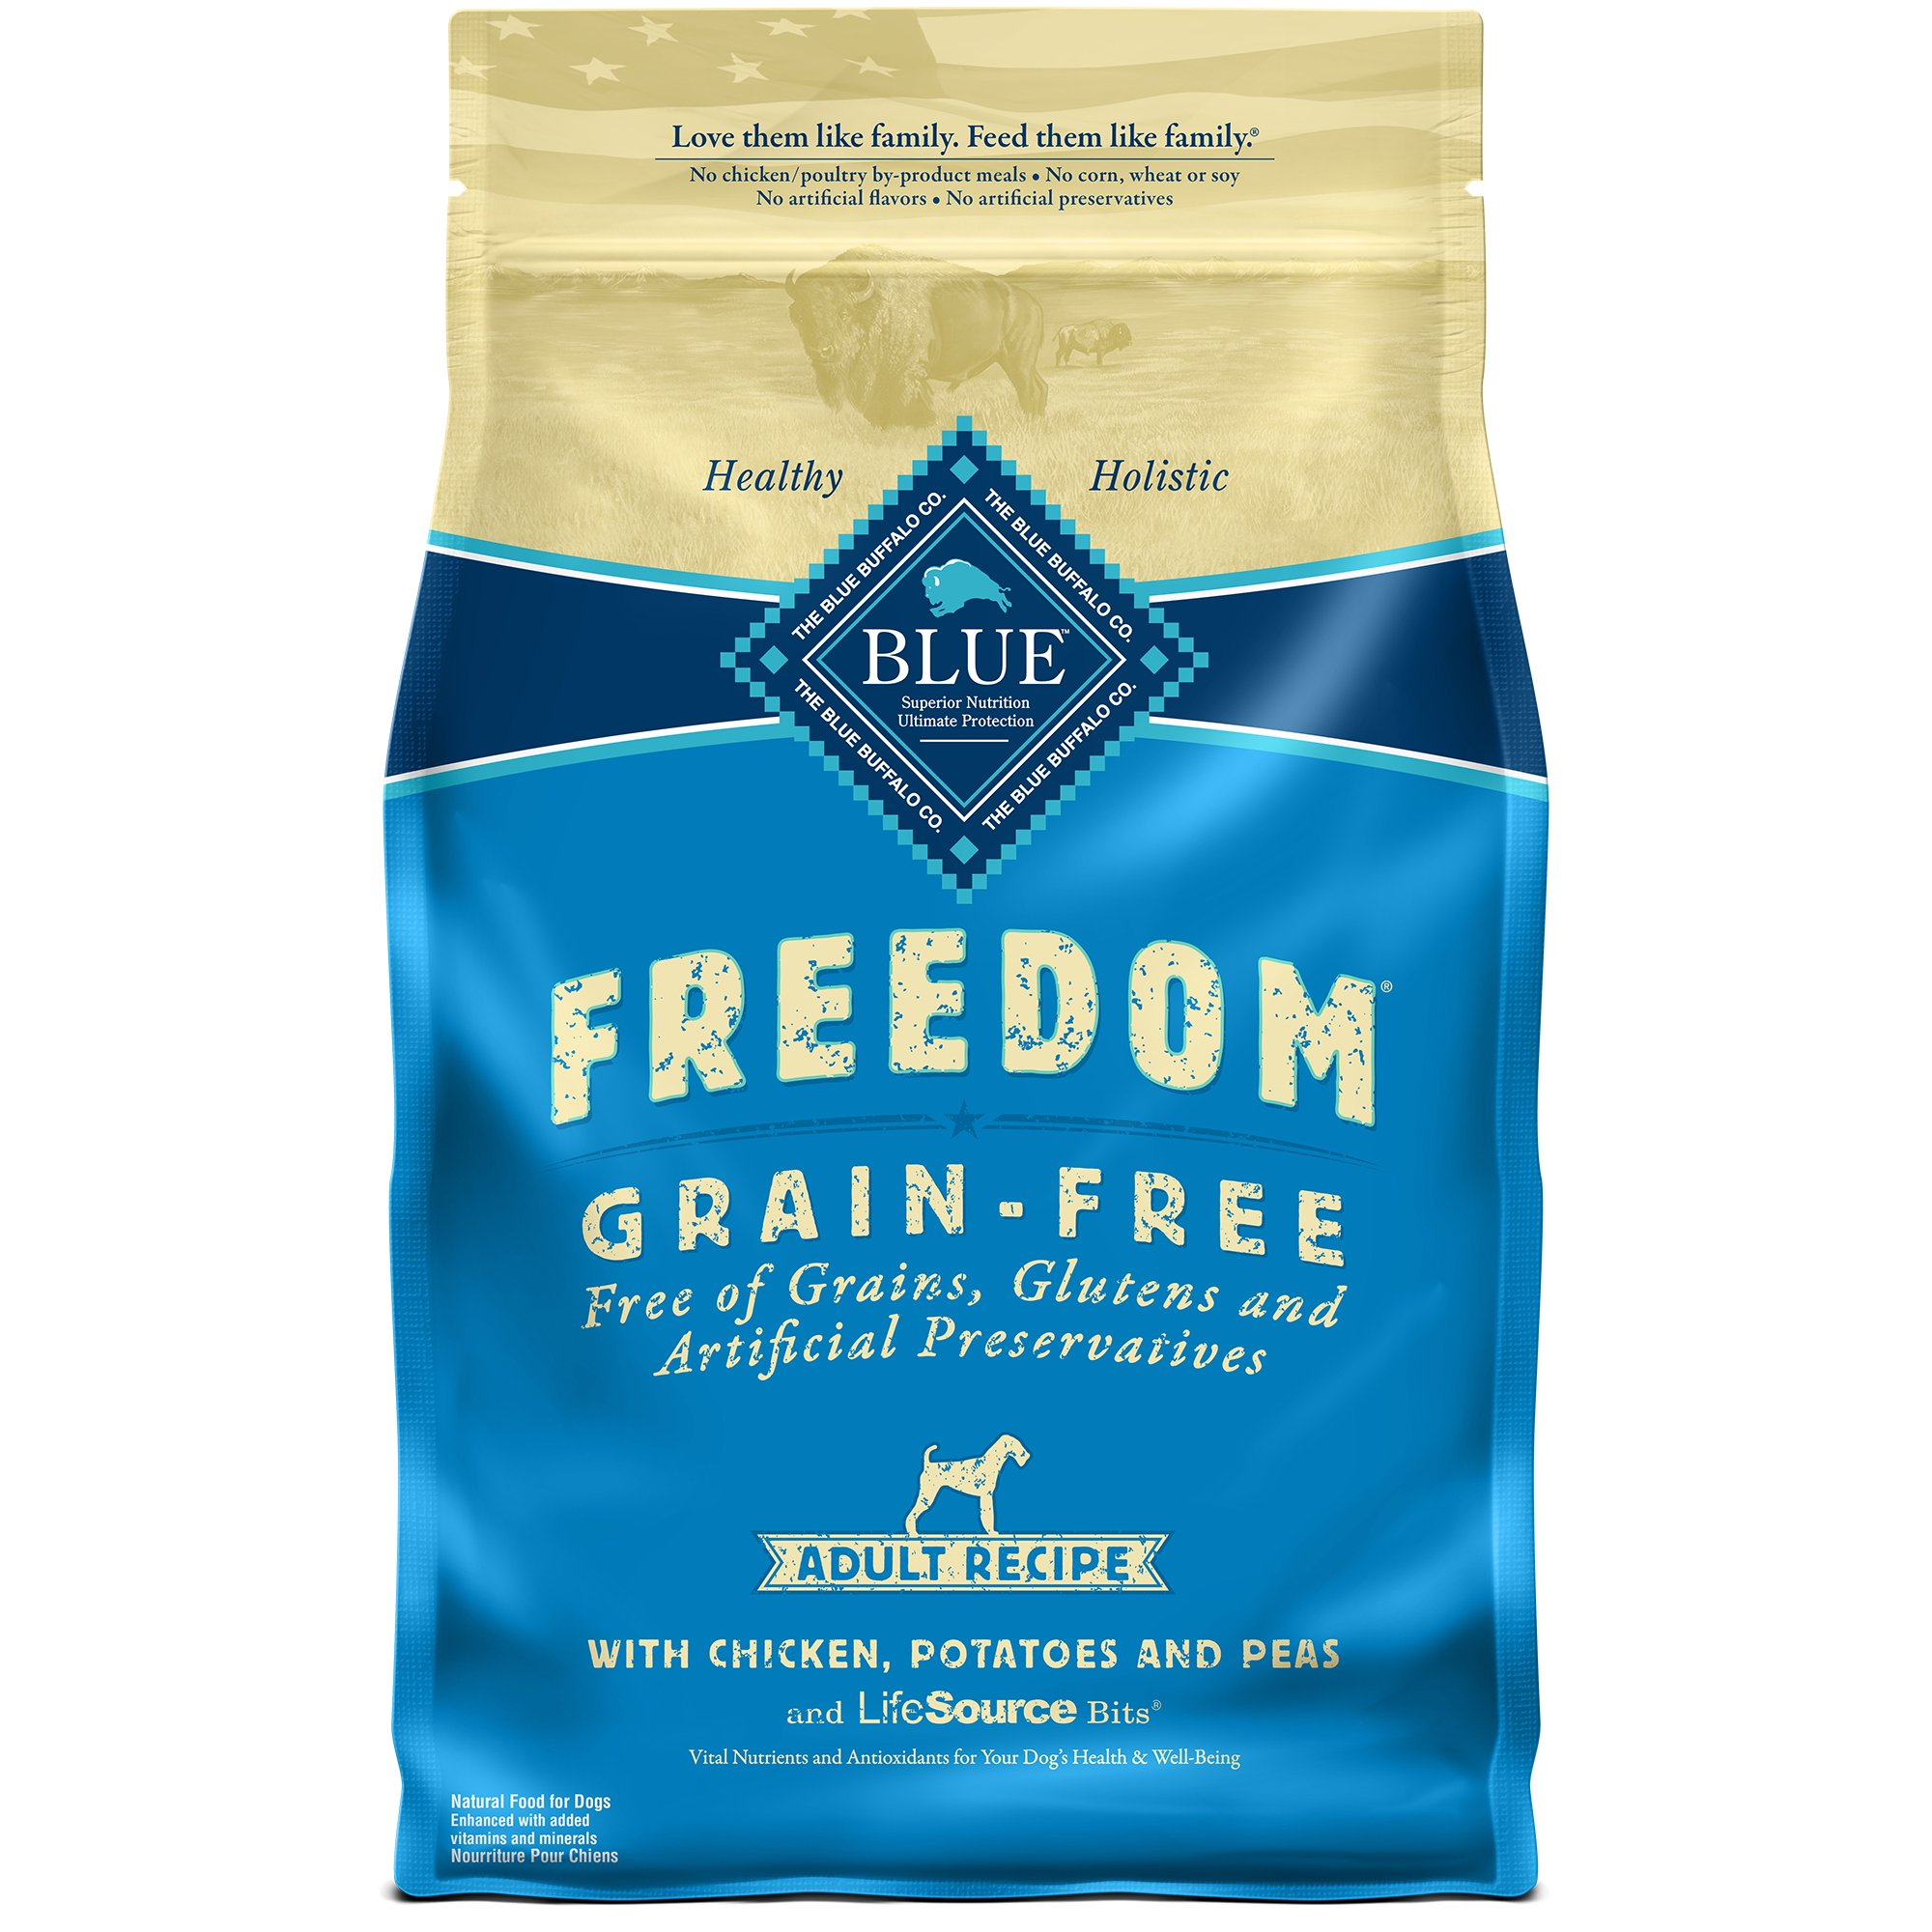 Because we love our pets like family, we want to feed them like family. At BLUE, we make our foods using the finest natural ingredients enhanced with vitamins and minerals. Discover a variety of healthy, holistic foods formulated for dogs and cats of all ages, breeds, and dietary needs.